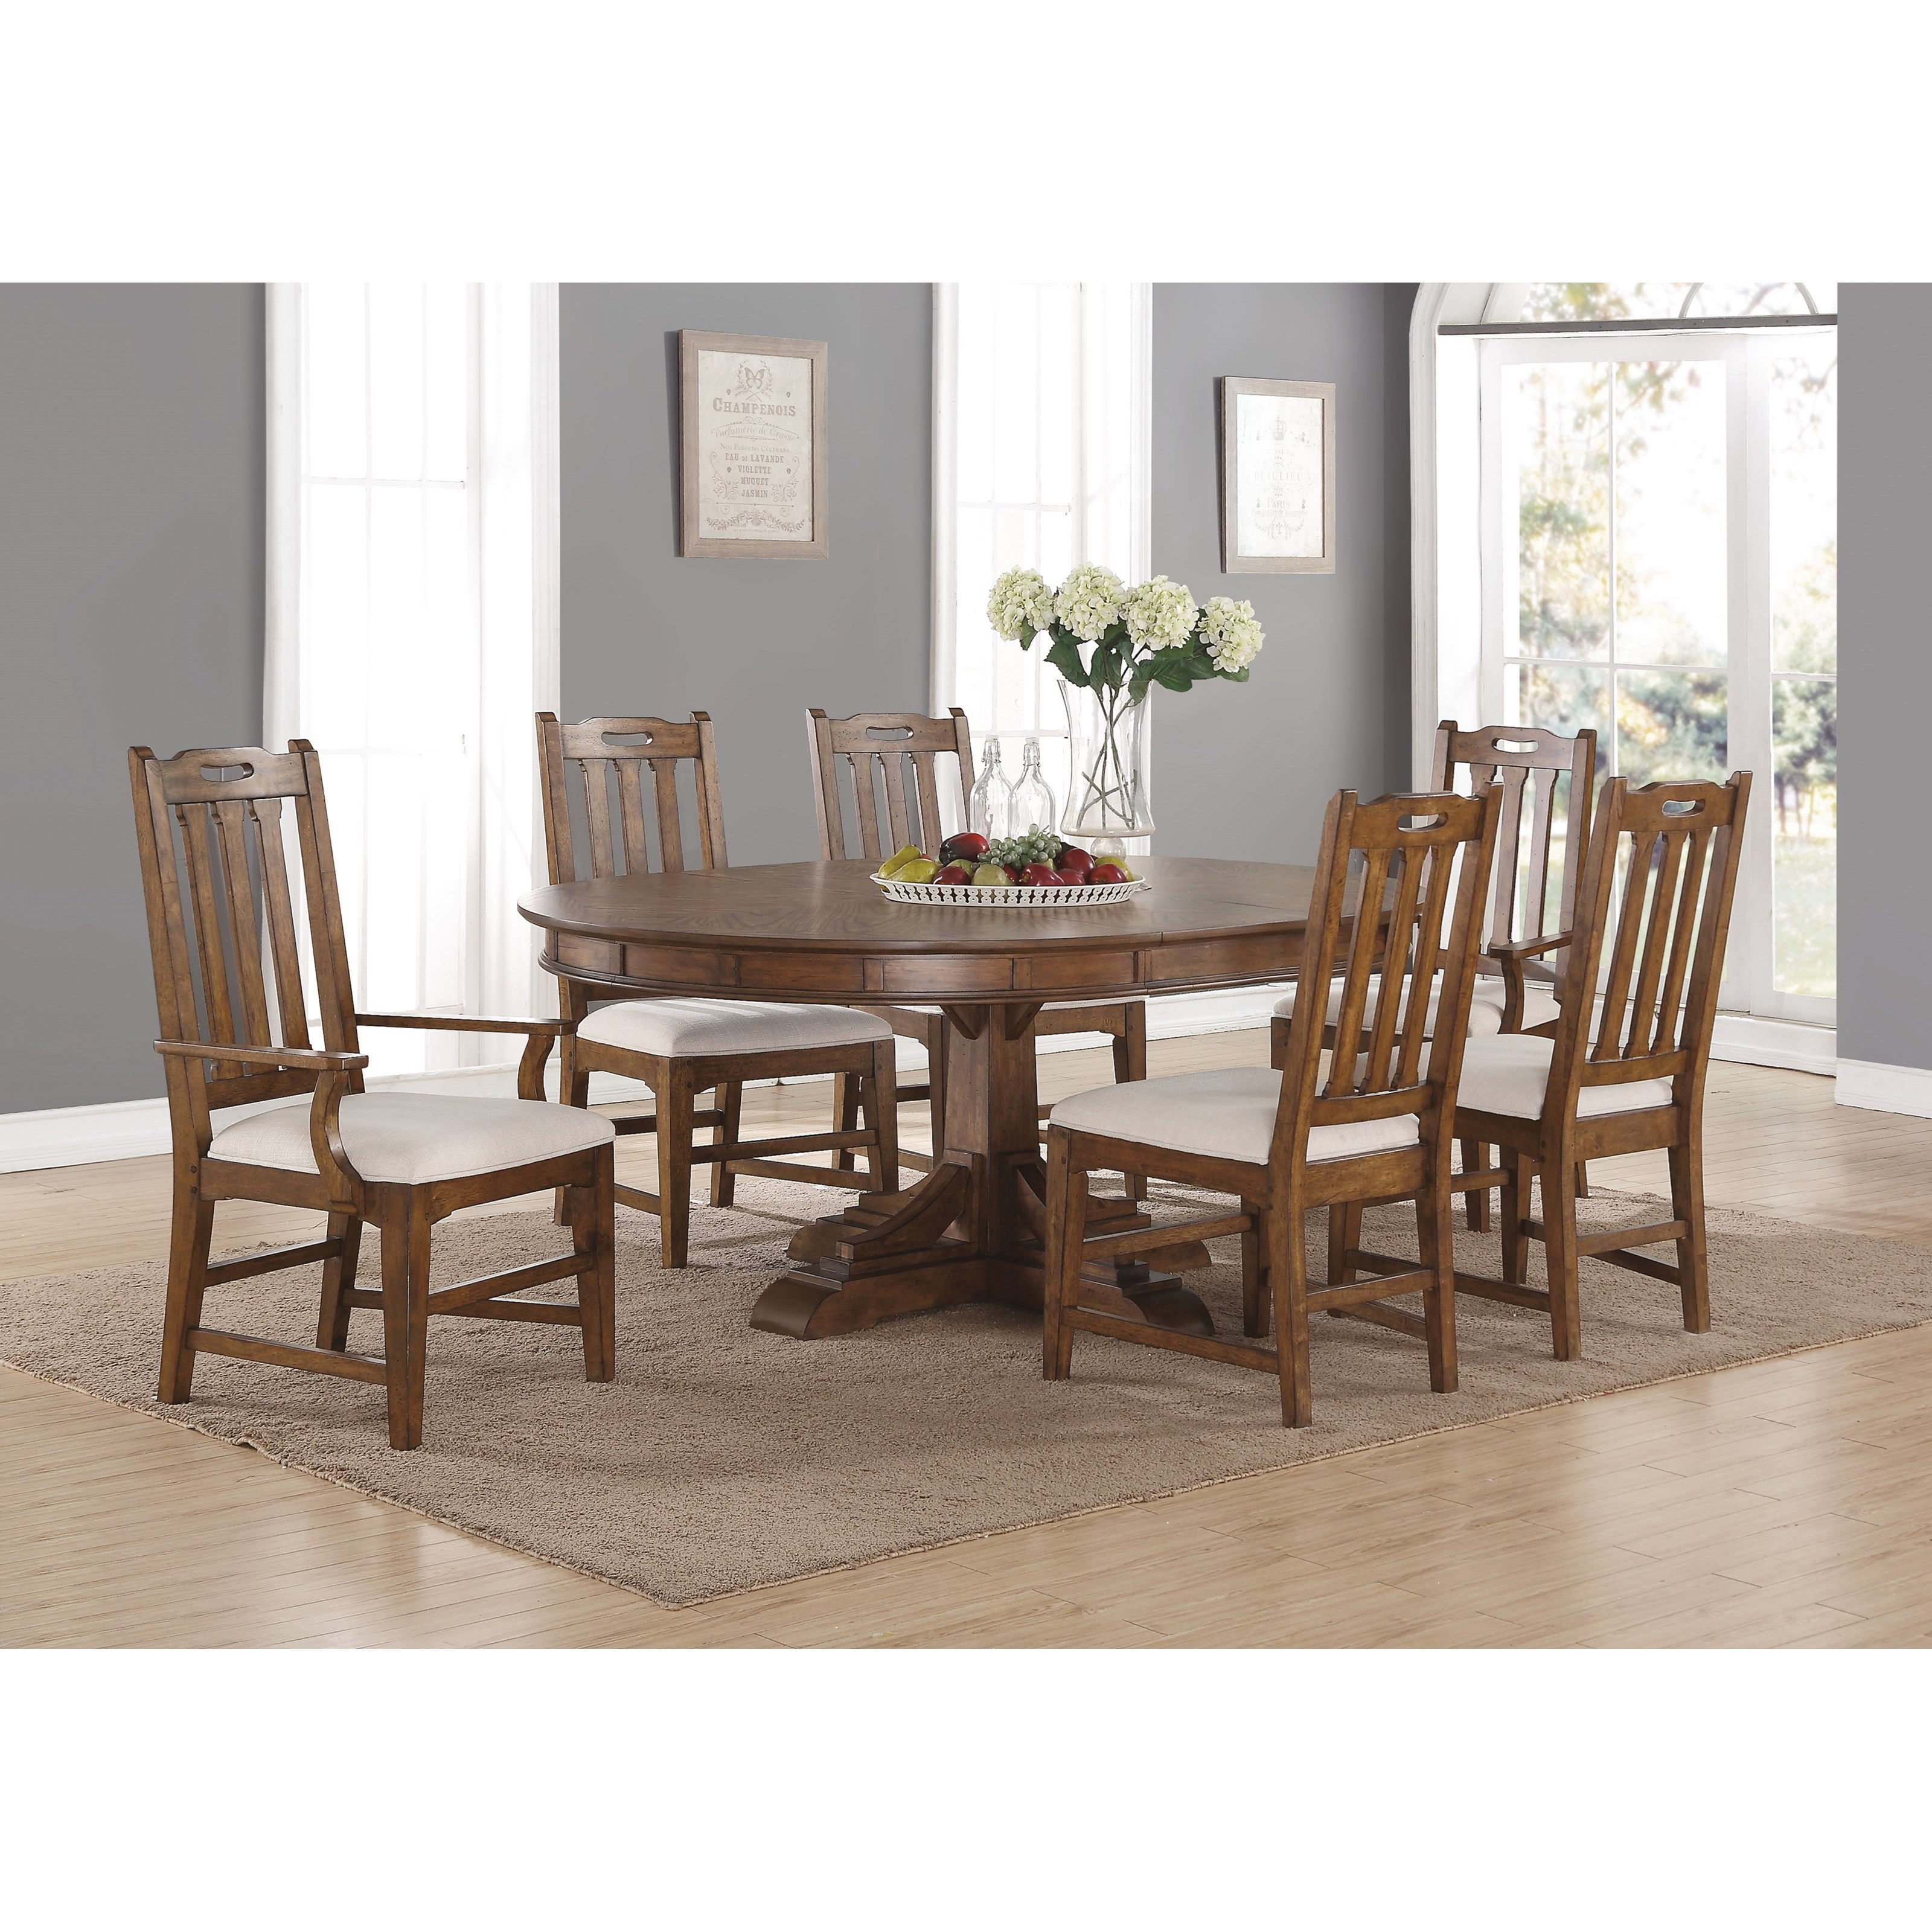 Flexsteel Wynwood Collection Sonora Formal Oval Dining Table And Chair Set  With Upholstered Chairs